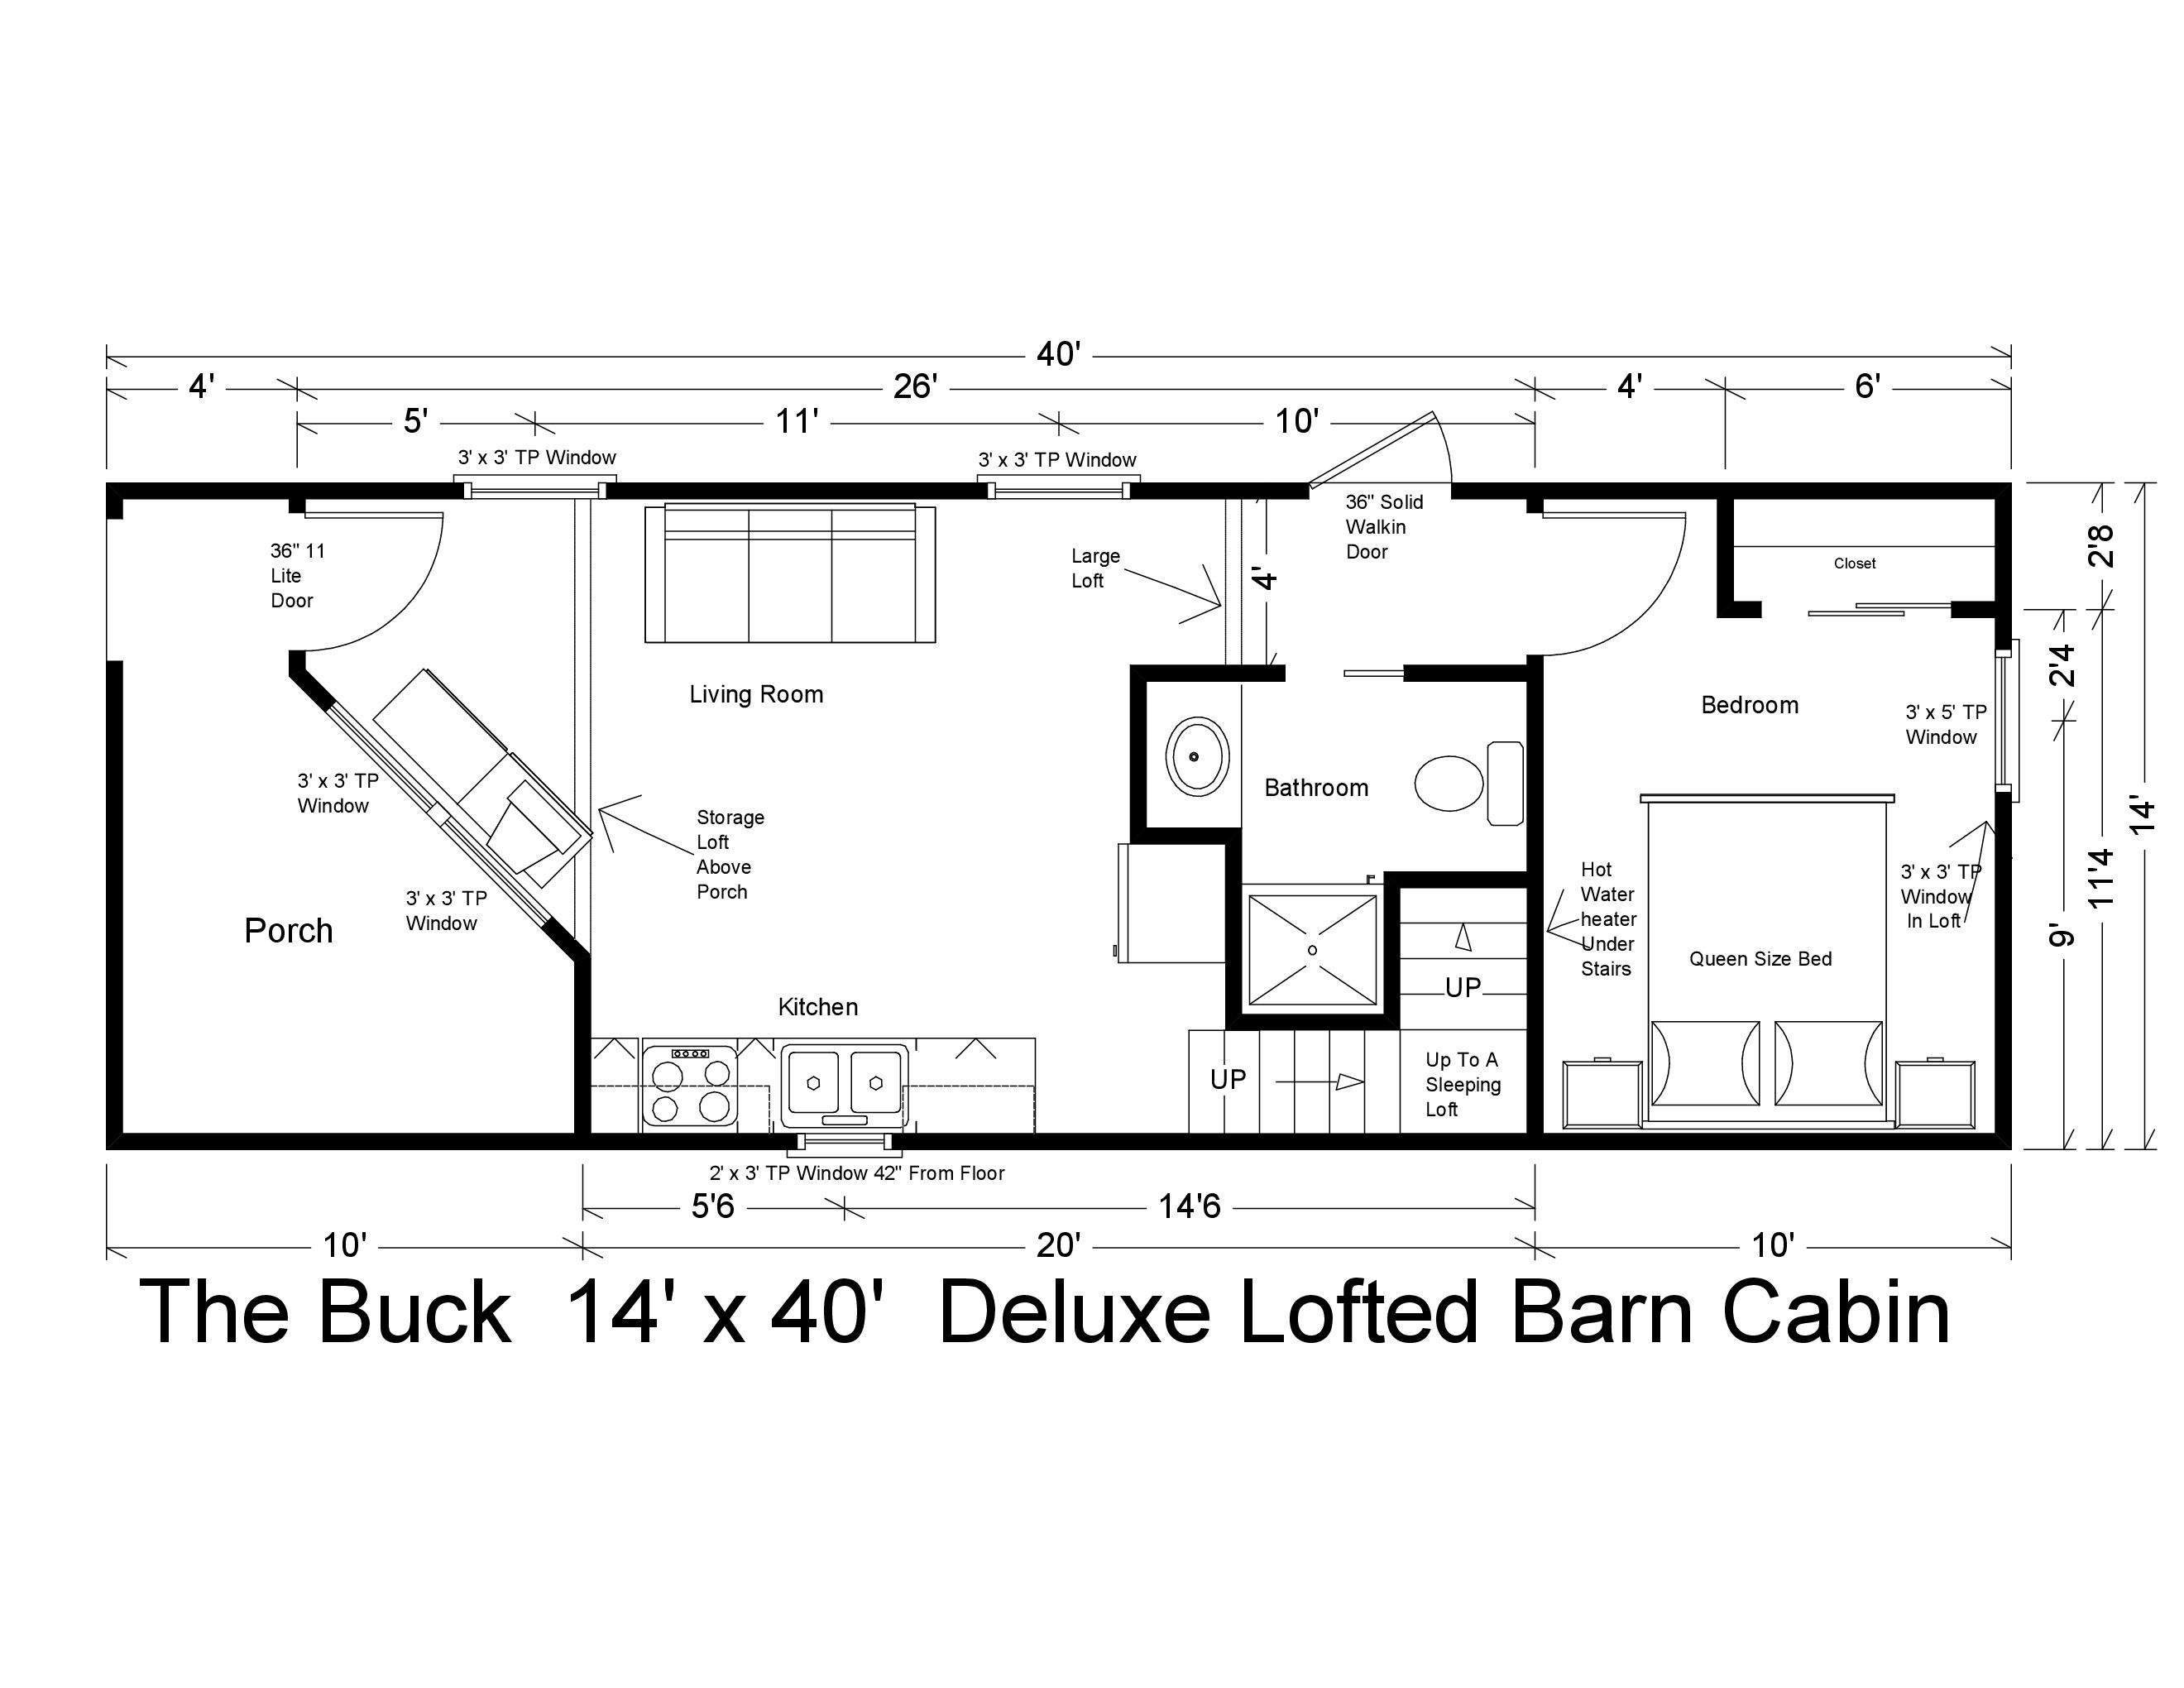 14 X 40 Deluxe Lofted Barn Cabin 560 Sq Ft Includes All Appliances And You Can Customize All Finishes Lofted Barn Cabin Cabin Floor Plans Small Cabin Plans